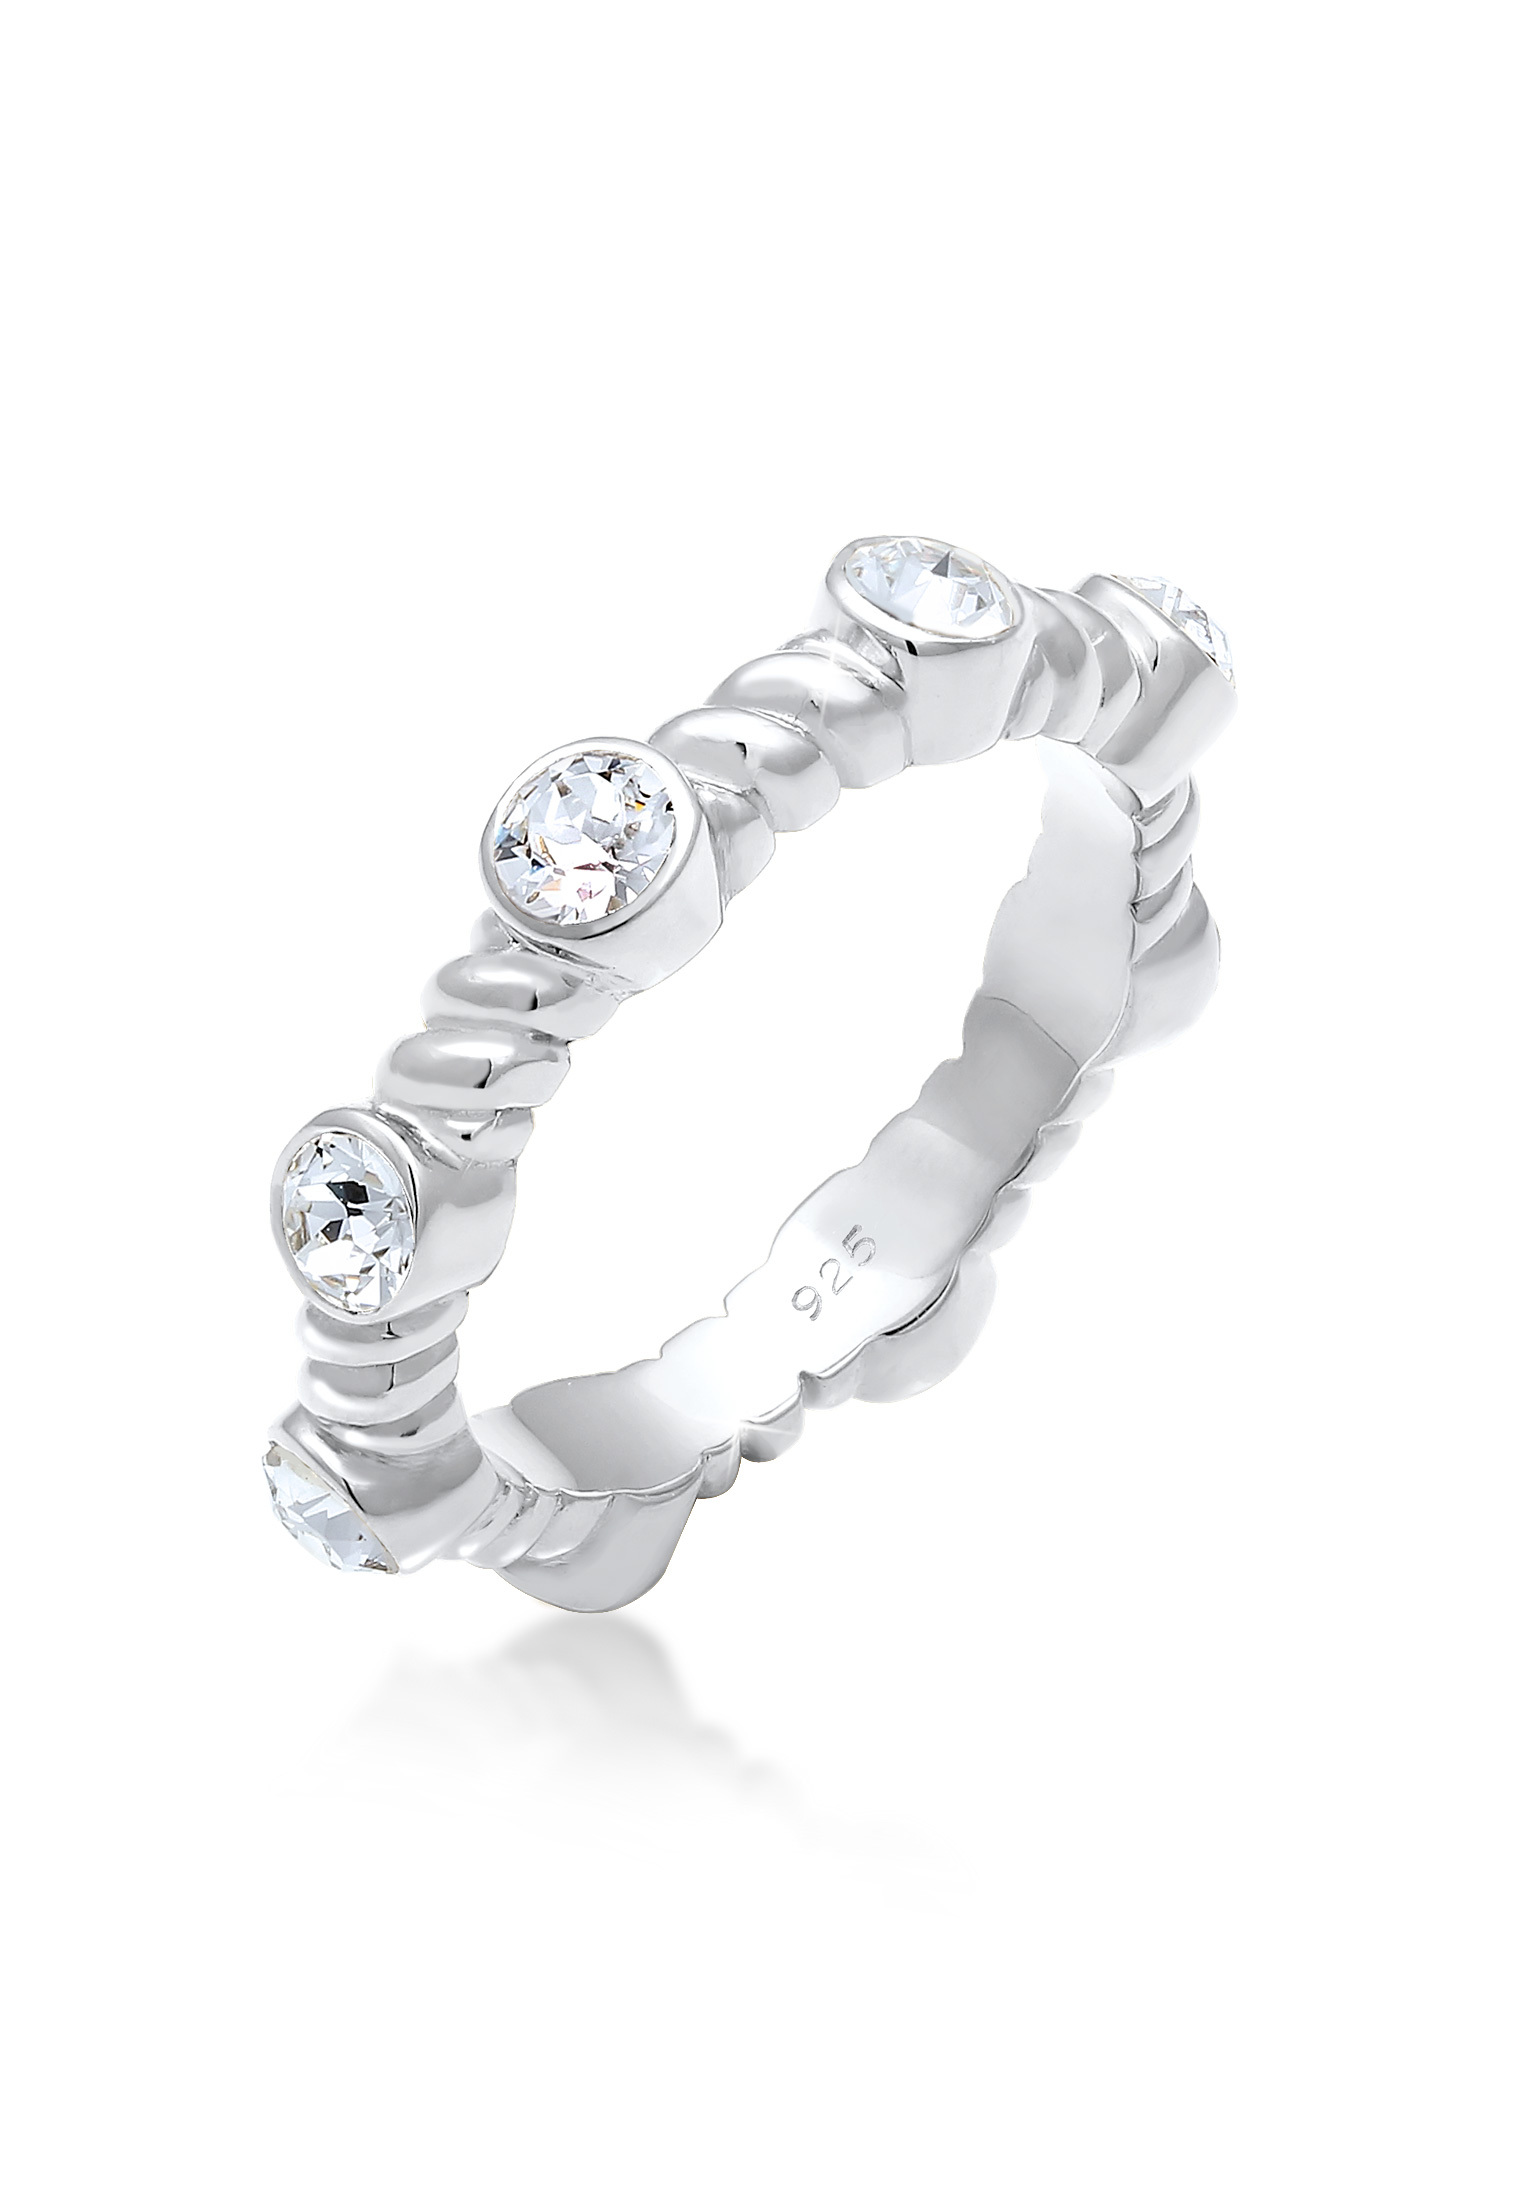 Ring Twisted | Kristall ( Weiß ) | 925er Sterling Silber